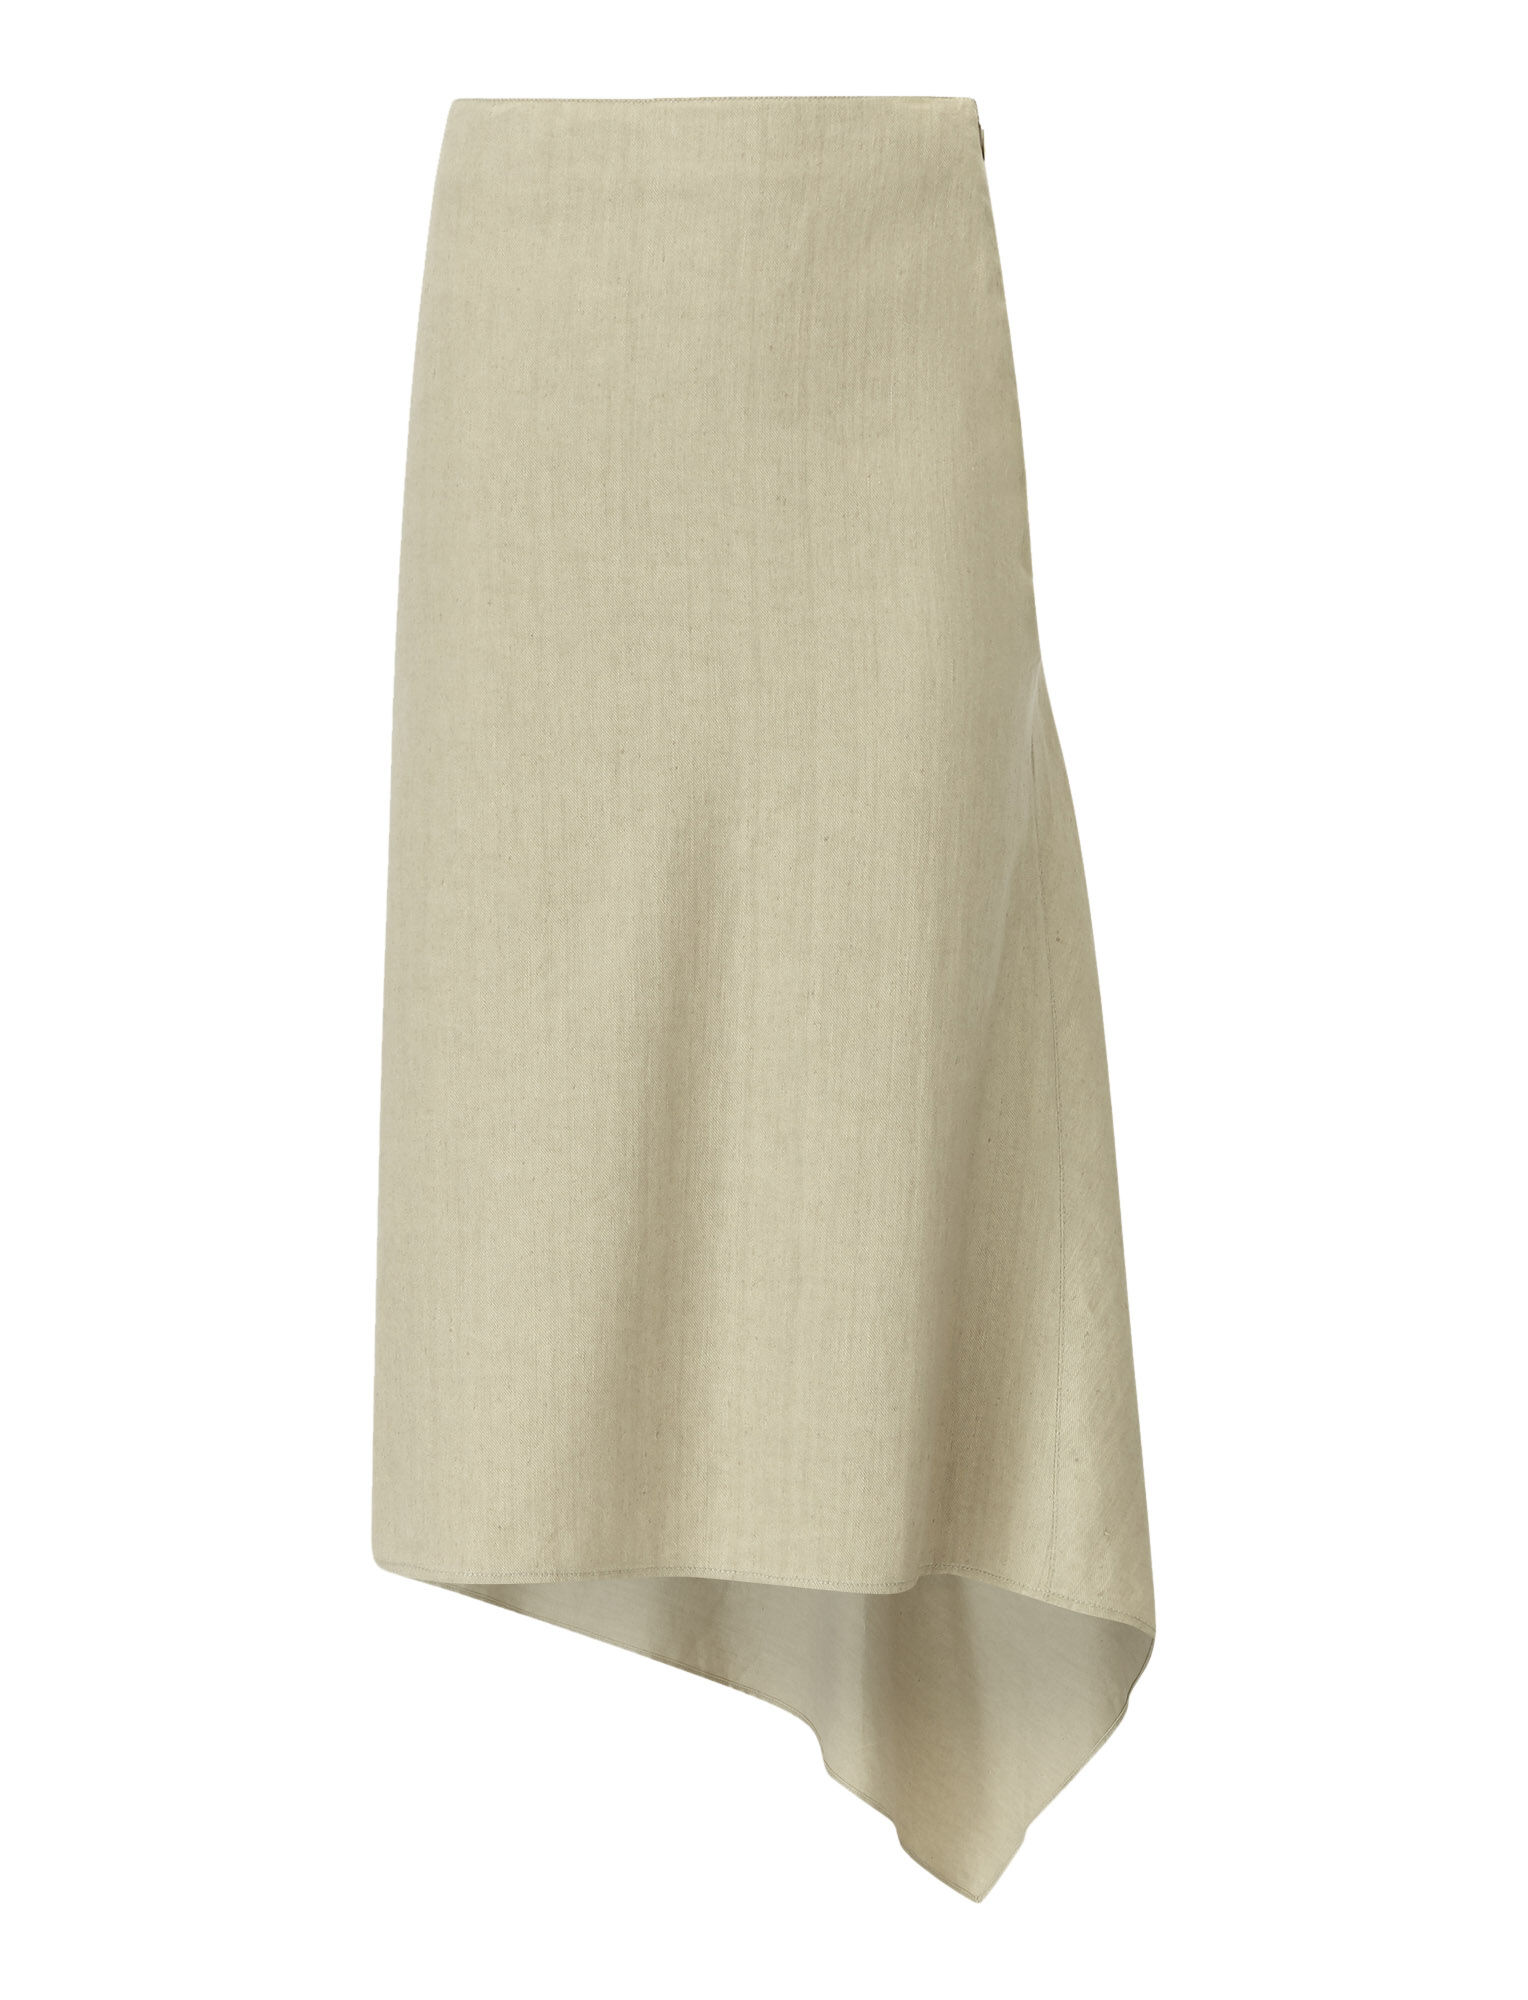 Joseph, Dillion Stretch Linen Skirt, in SAND